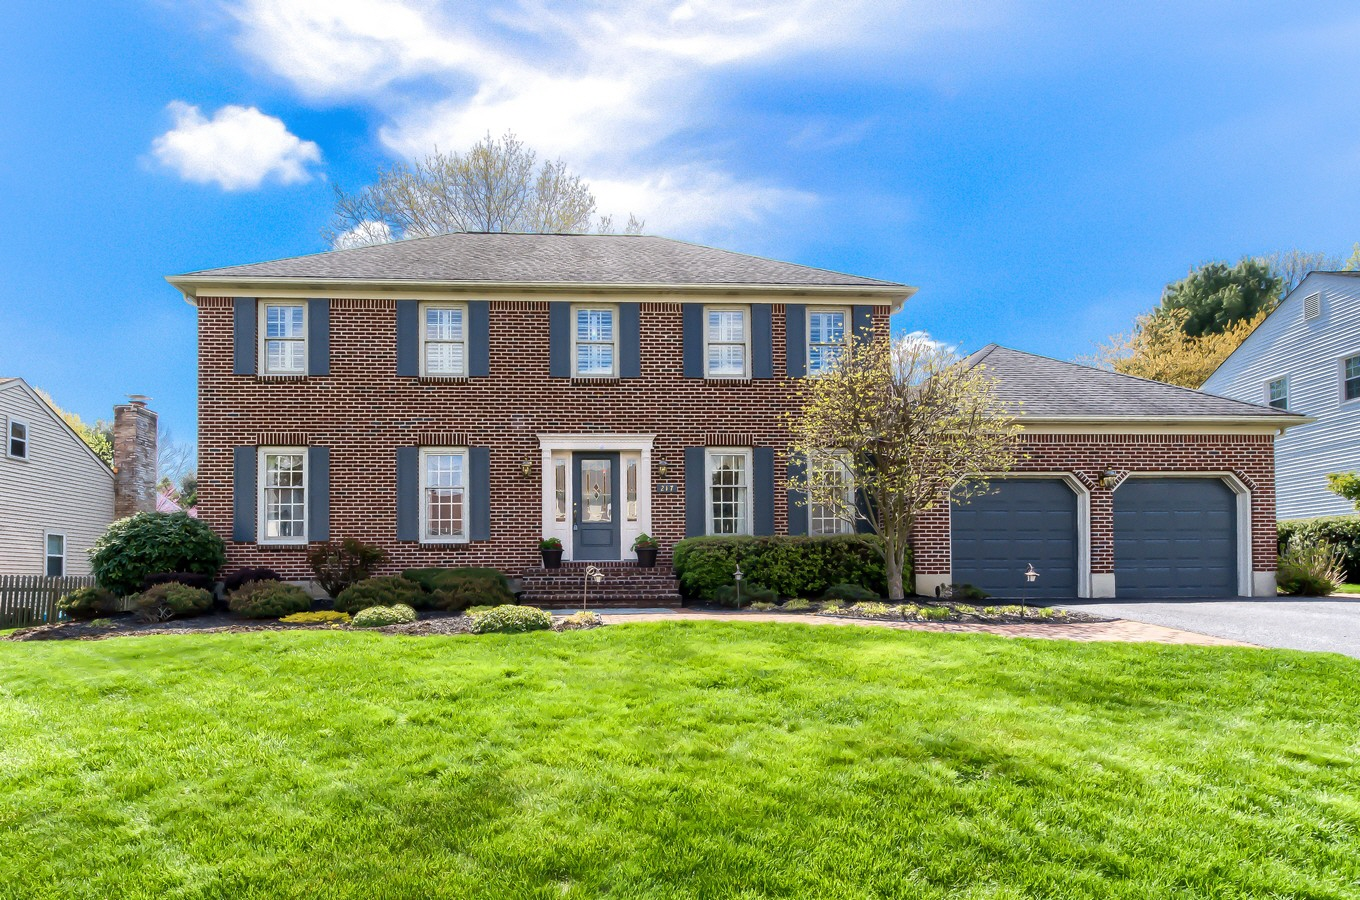 217 Barberry Dr, Wilmington, DE, 19808 United States